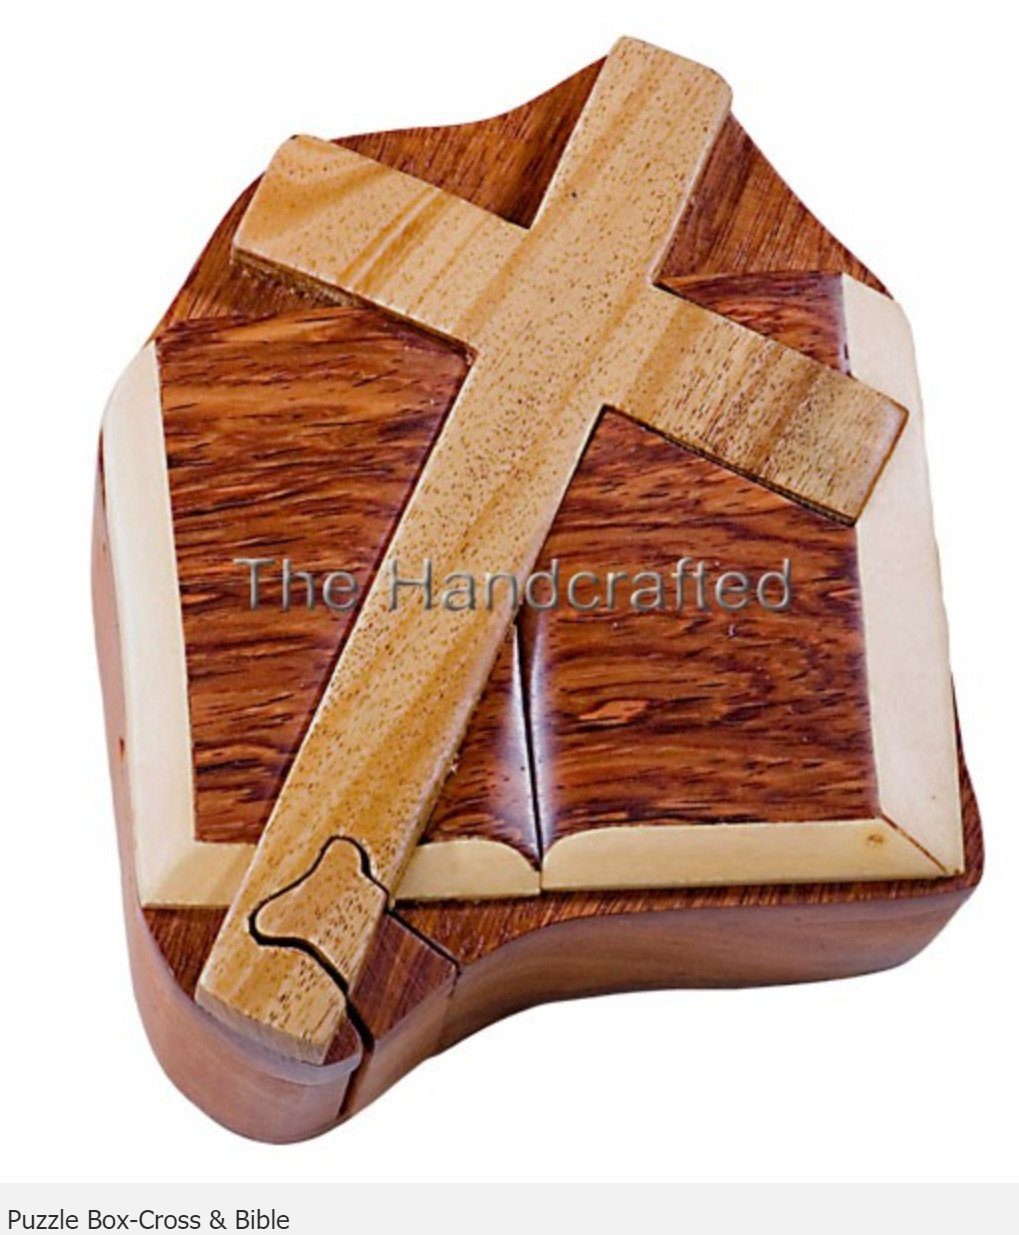 Cross and Bible Secret Intarsia Wood Puzzle Box